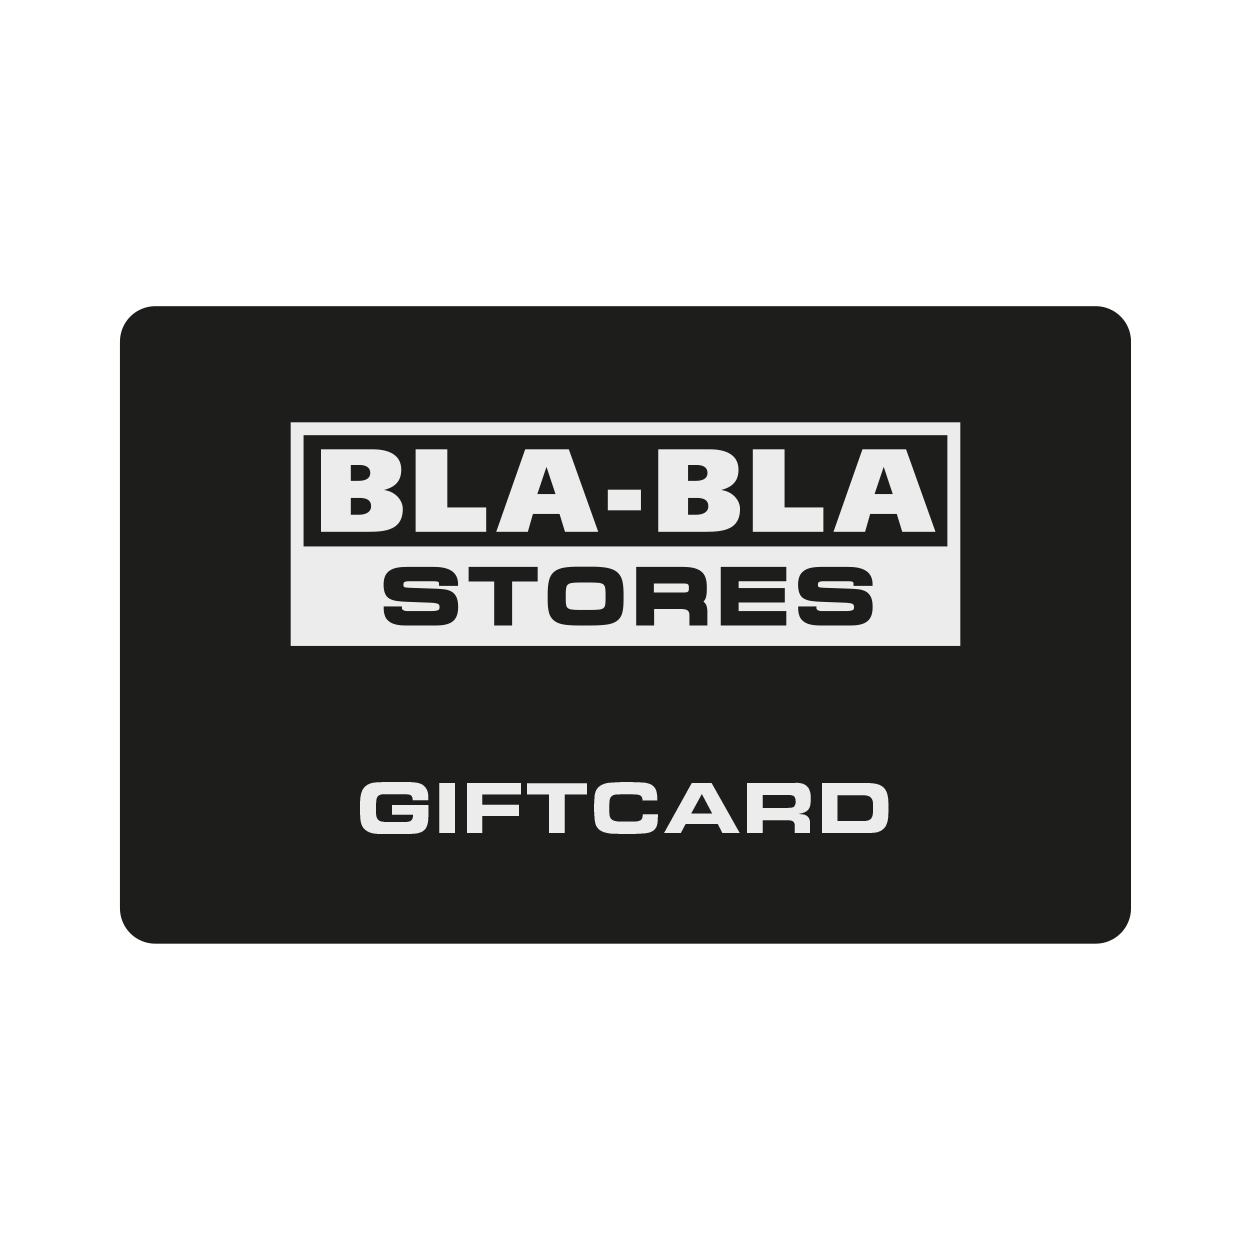 Giftcard Bla-Bla Stores